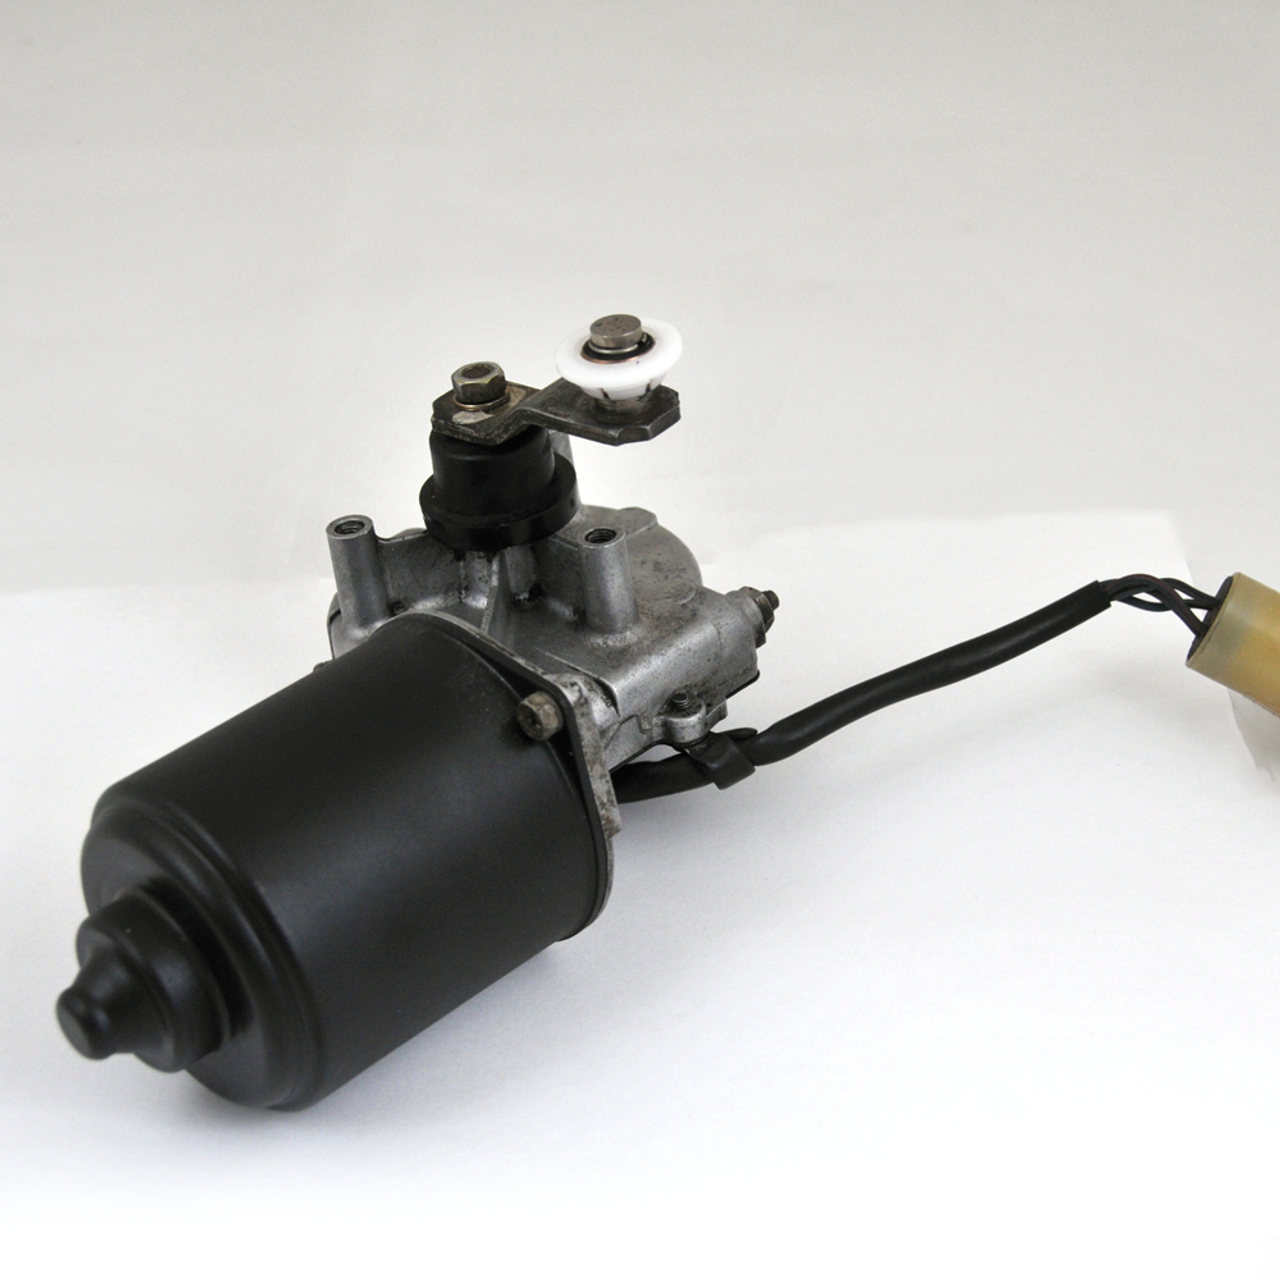 60 Series Windshield Wiper Motor Grommet (WMG-1)